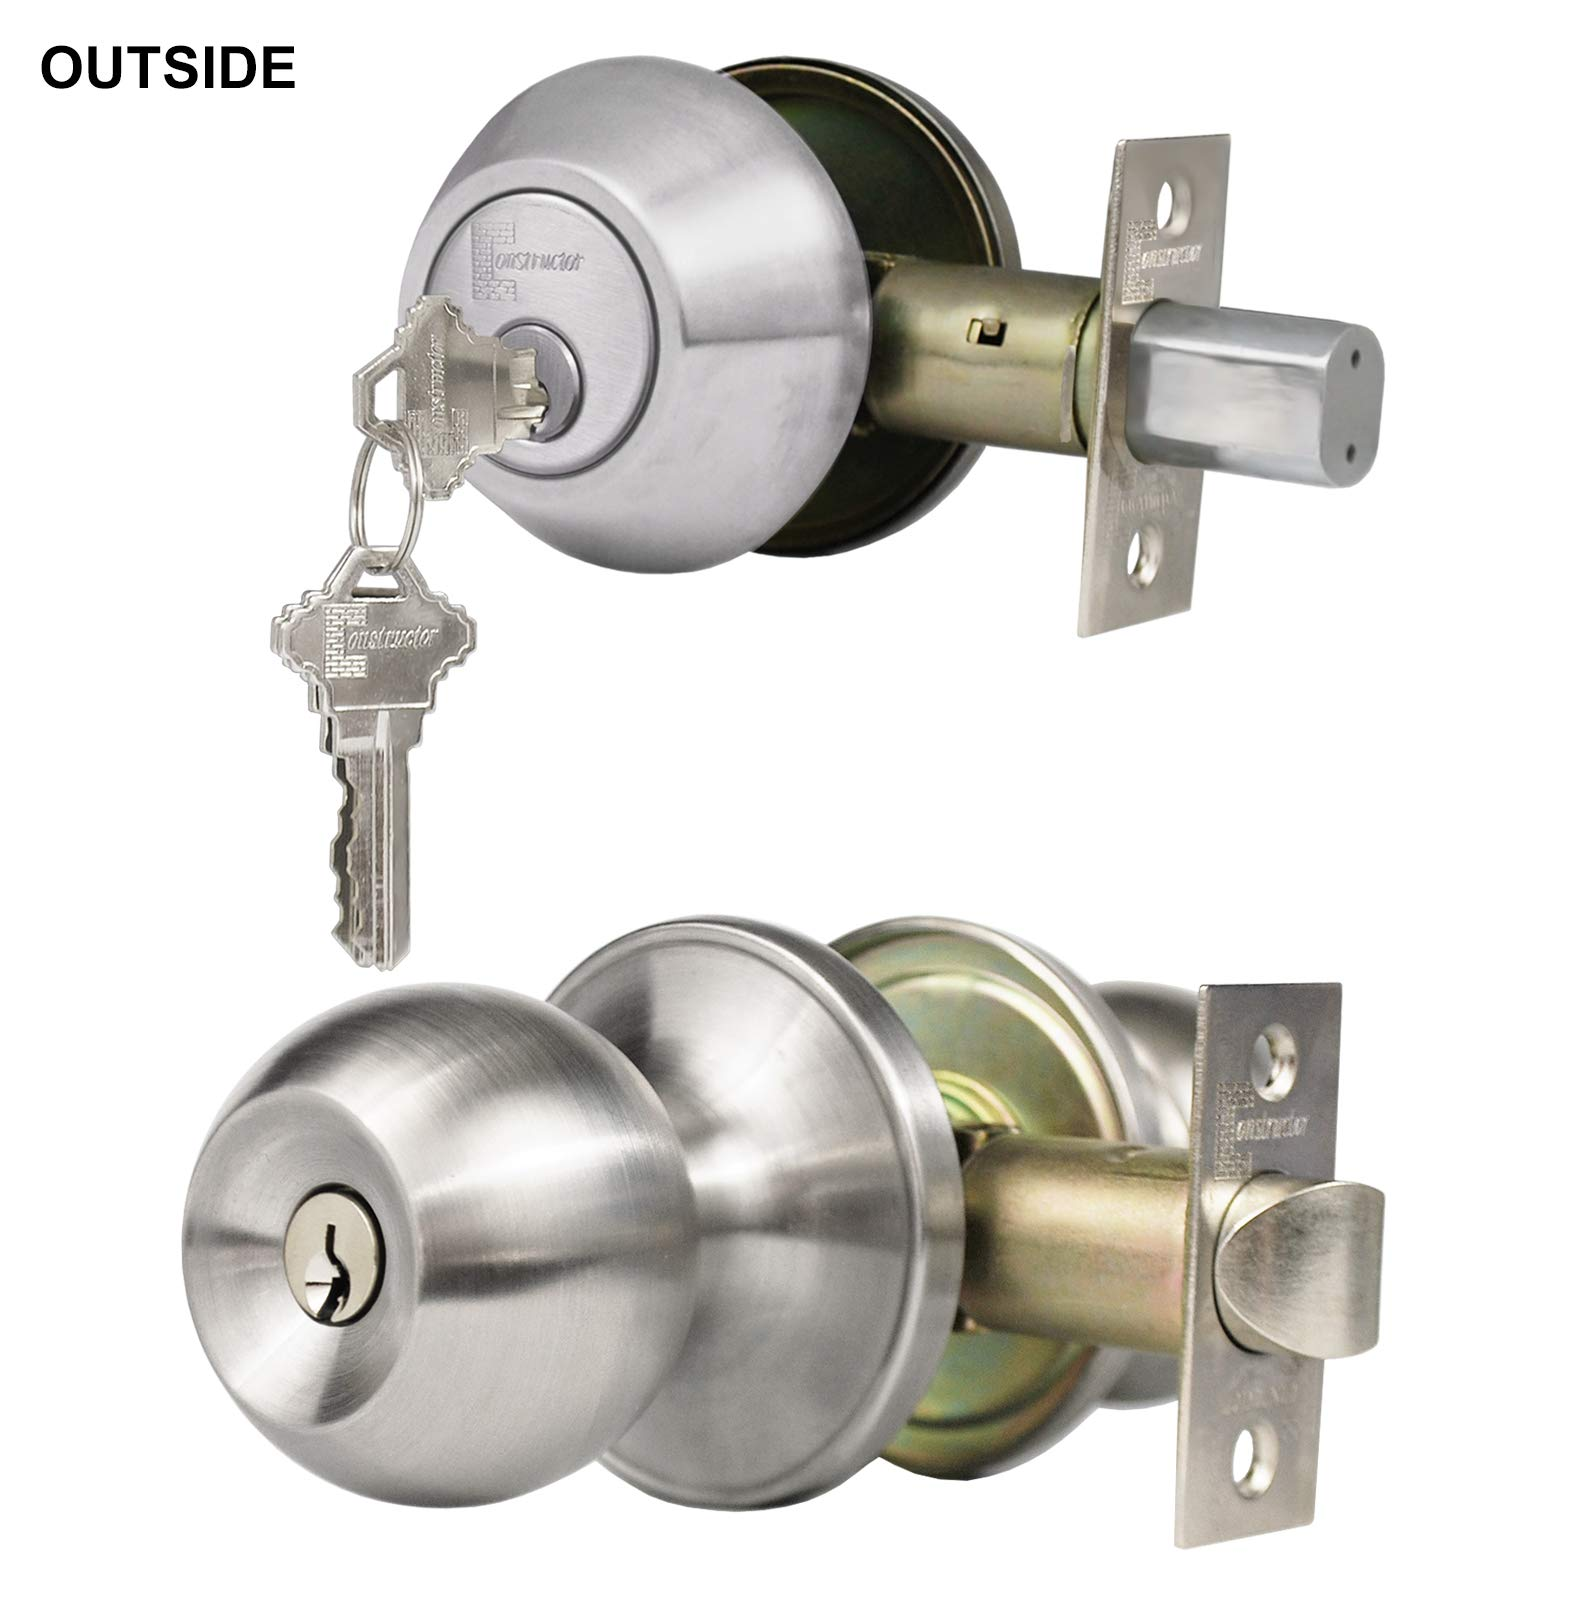 Constructor Chronos CON-CHR-Combo-SS Knob and Deadbolt Stainless Steel Single Cylinder Keyed Alike